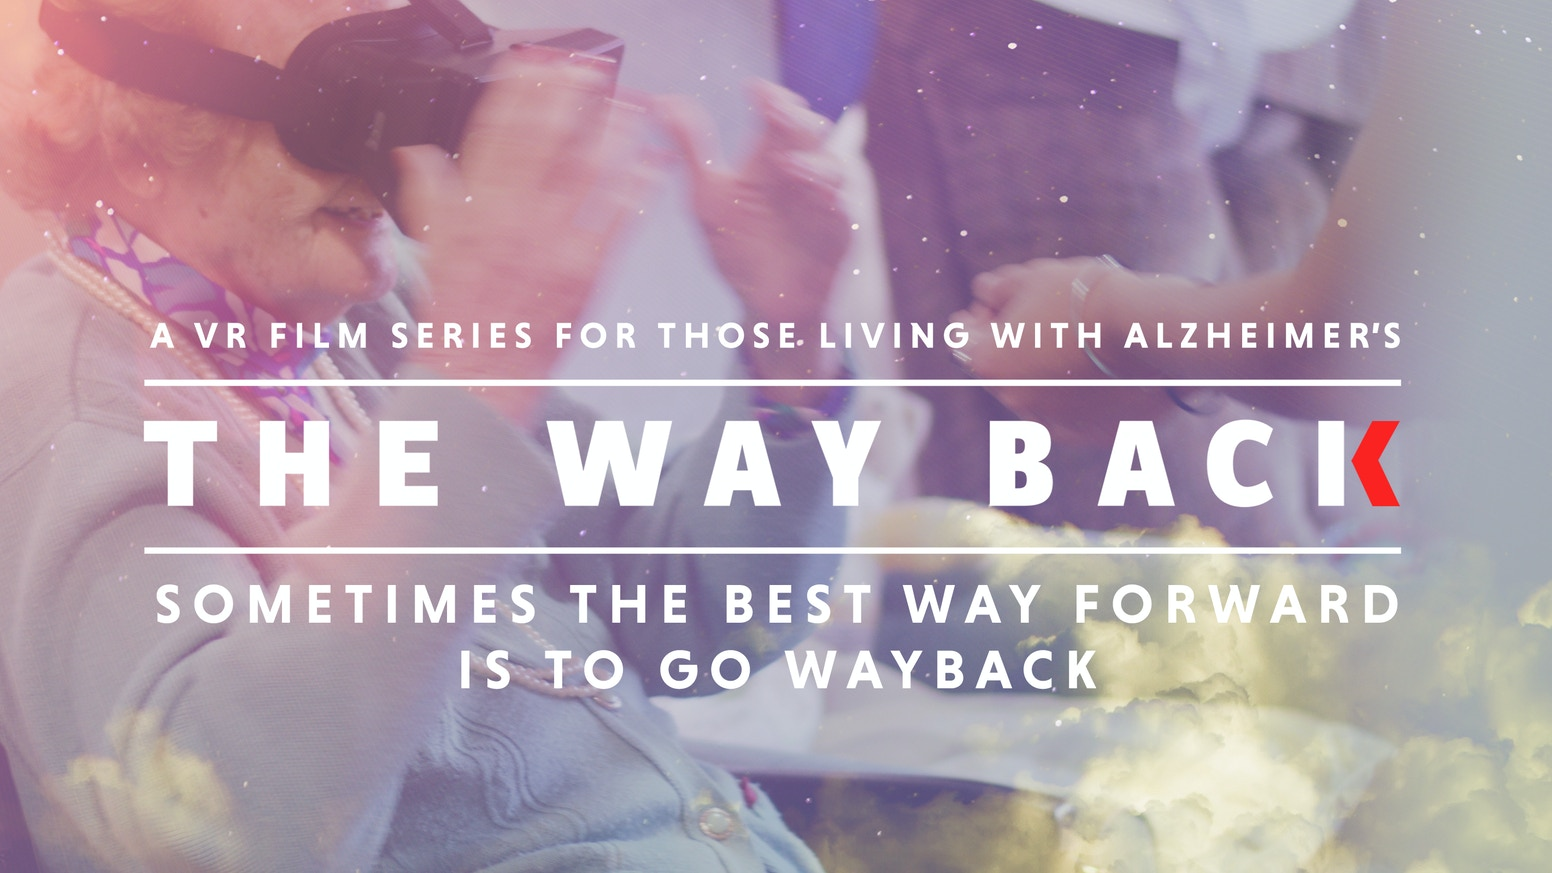 THE WAYBACK:Virtual Reality Helping People With Alzheimer